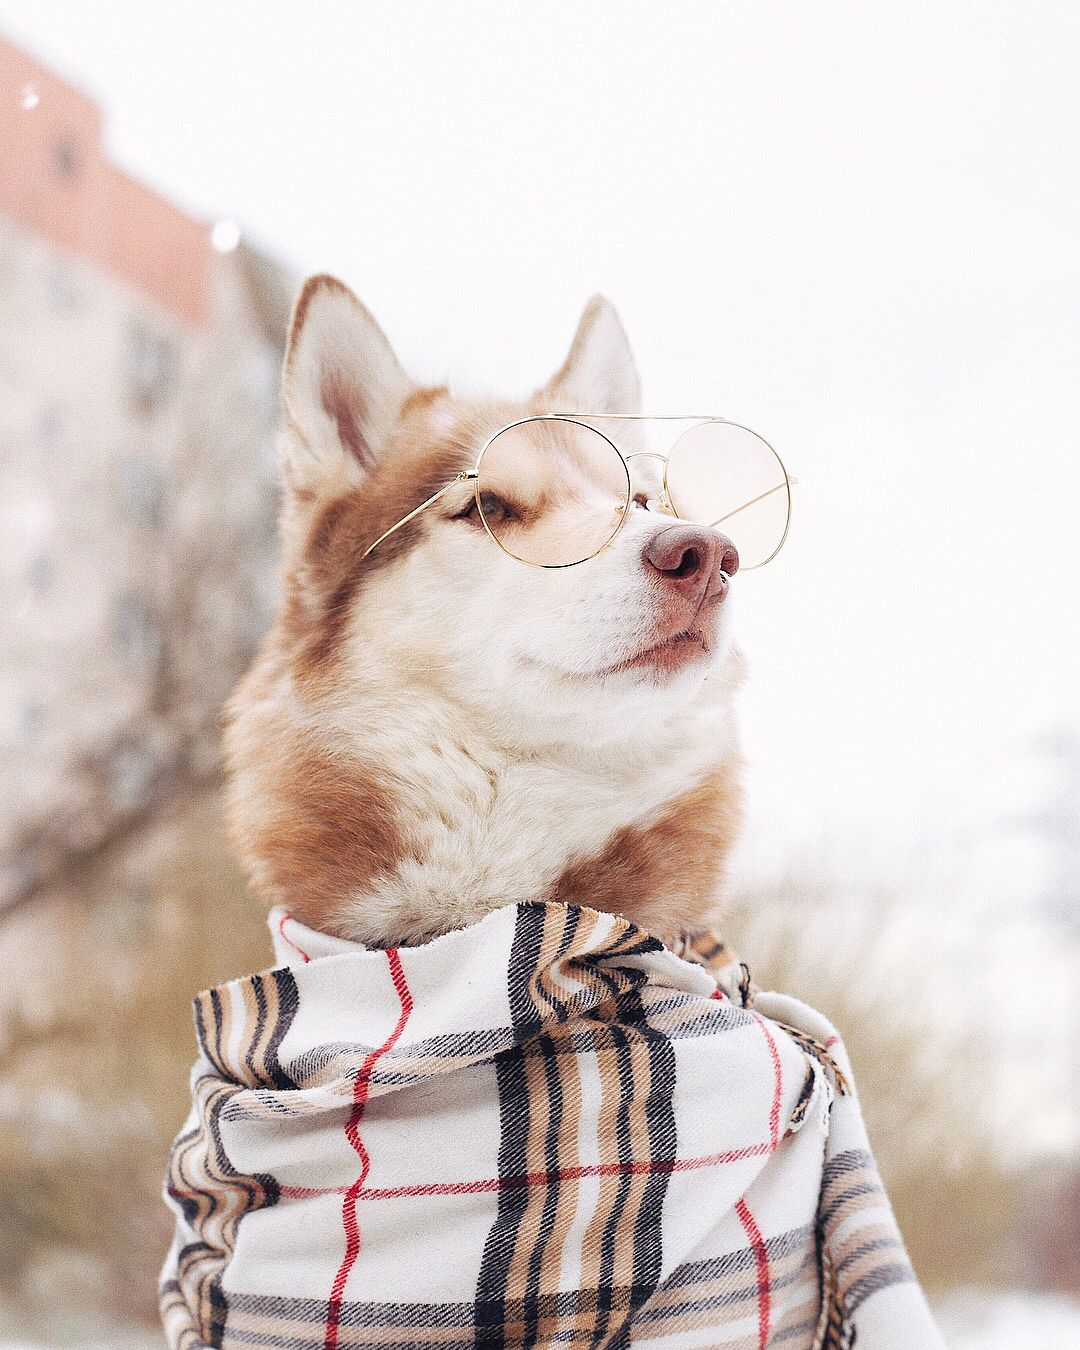 Huskey With Sunglasses Cute Dogs Dogs Stylish Dogs